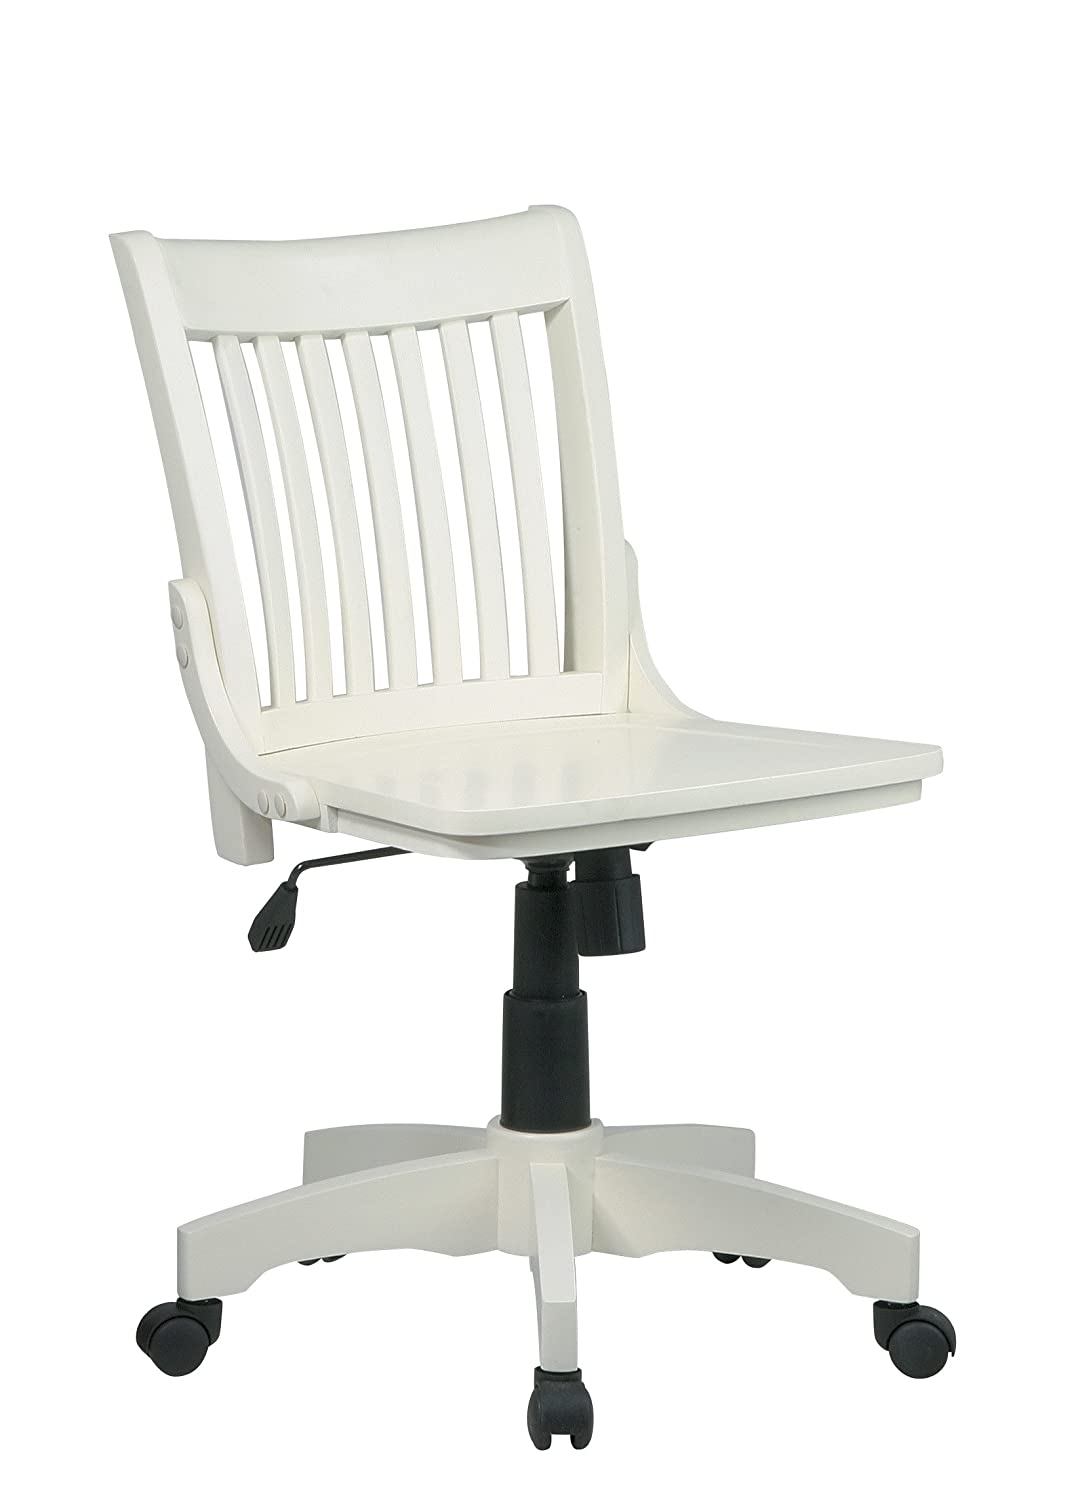 deluxe wooden home office. Amazoncom Deluxe MidBack Bankers Chair Finish Antique White Arms Not Included Kitchen U0026 Dining Wooden Home Office